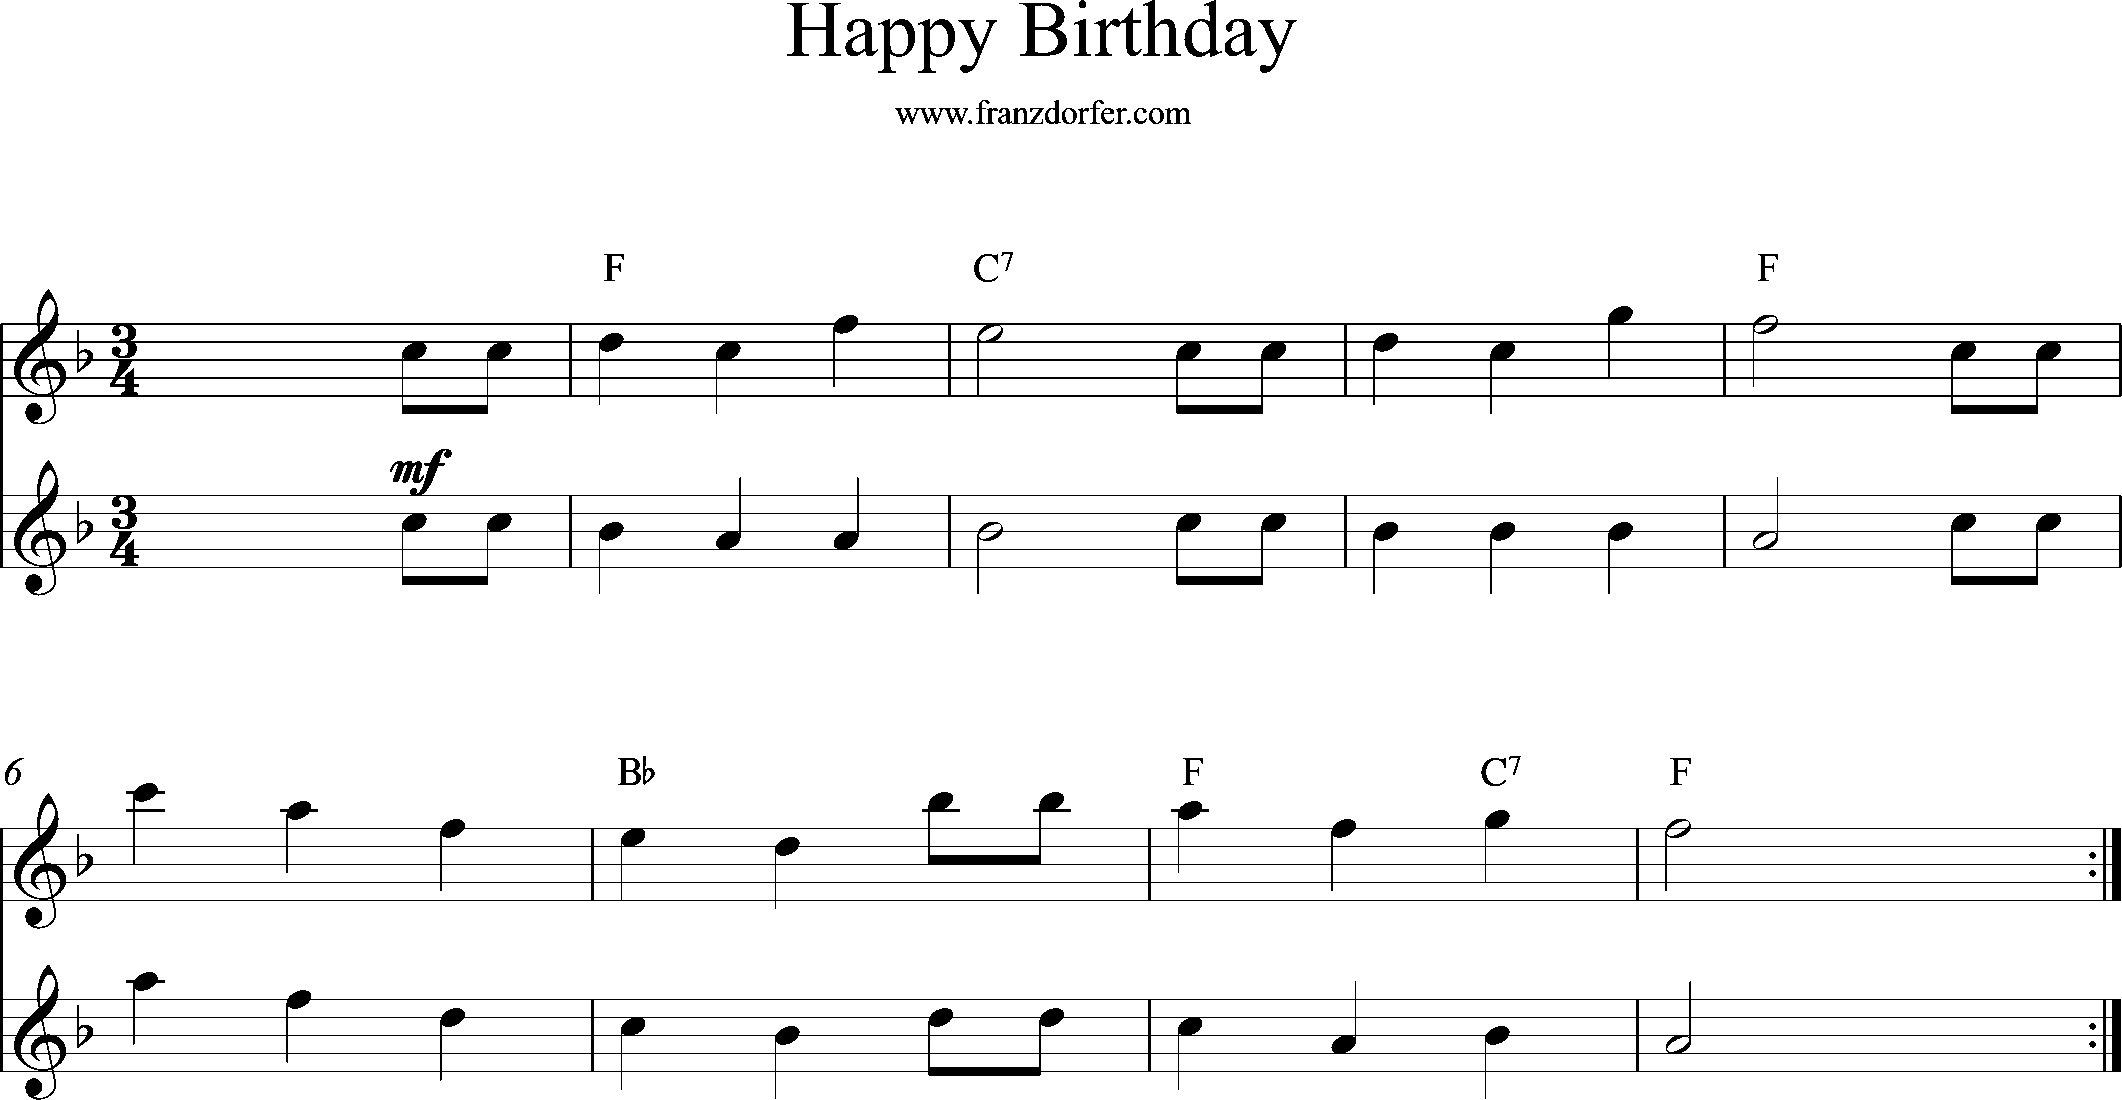 sheetmusic for Flute, Happy Birthday, F-Major